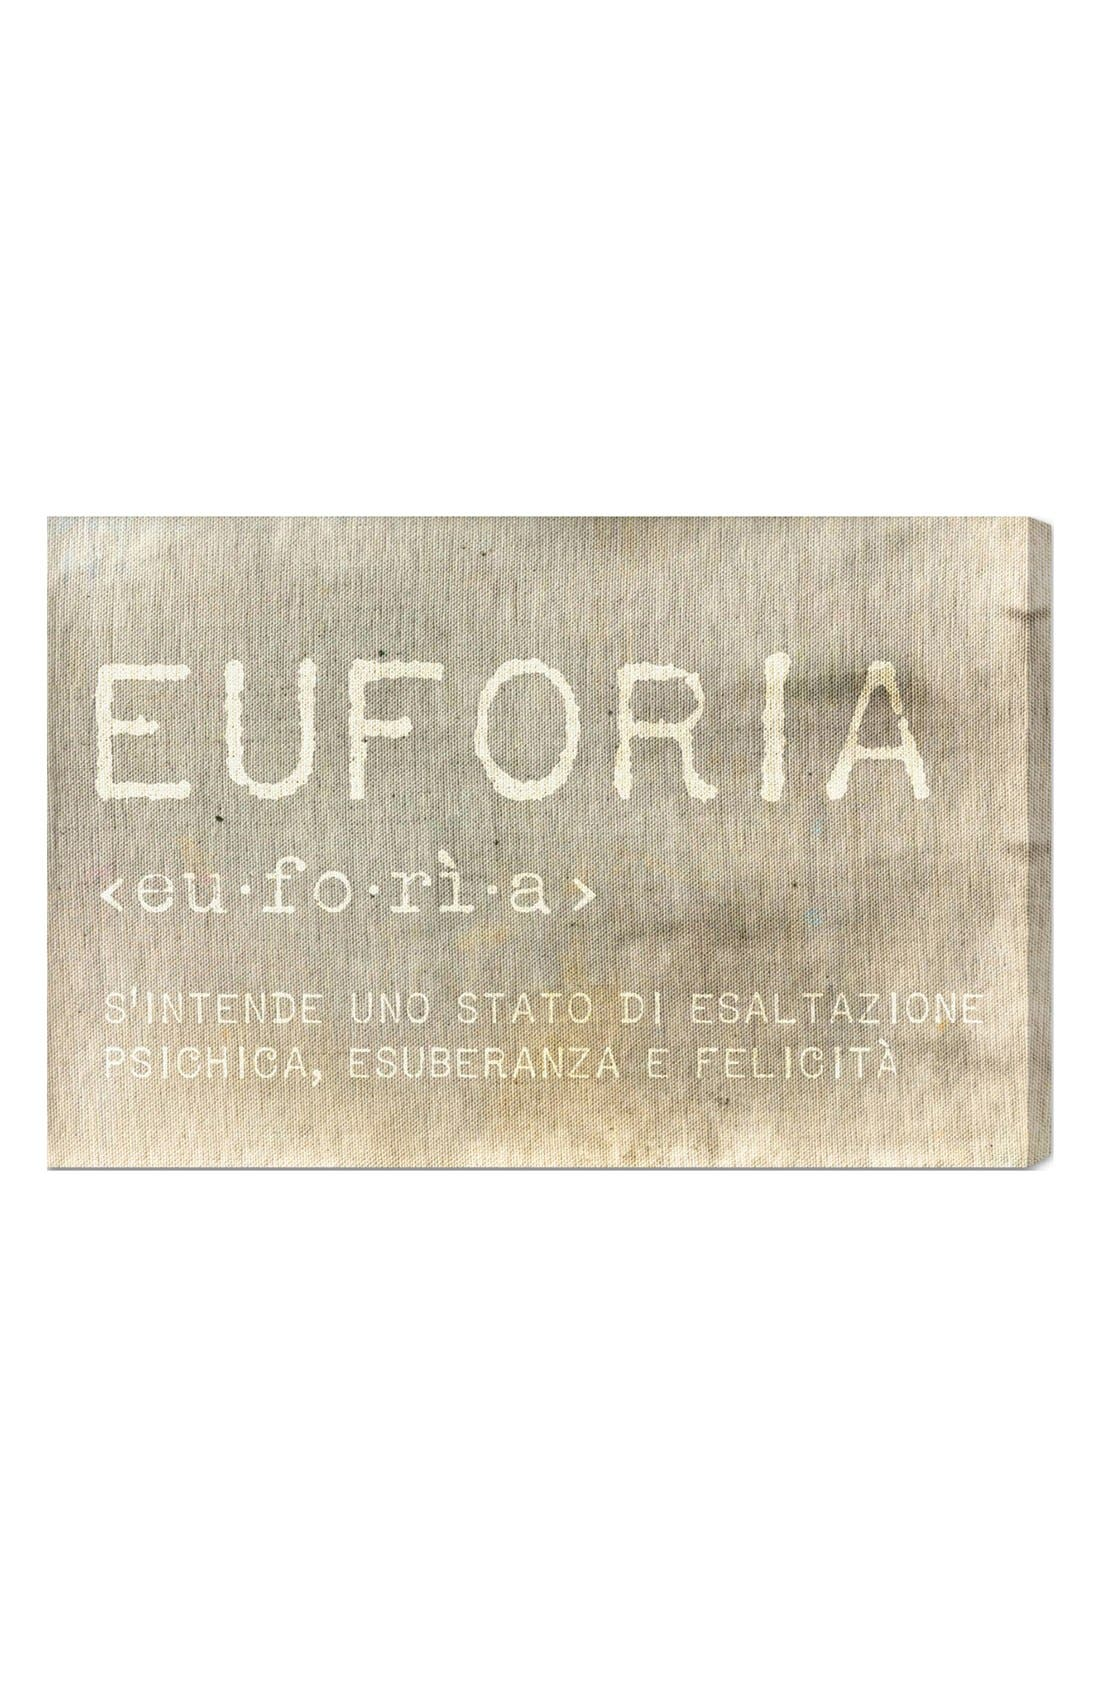 Alternate Image 1 Selected - Oliver Gal 'Euforia' Wall Art